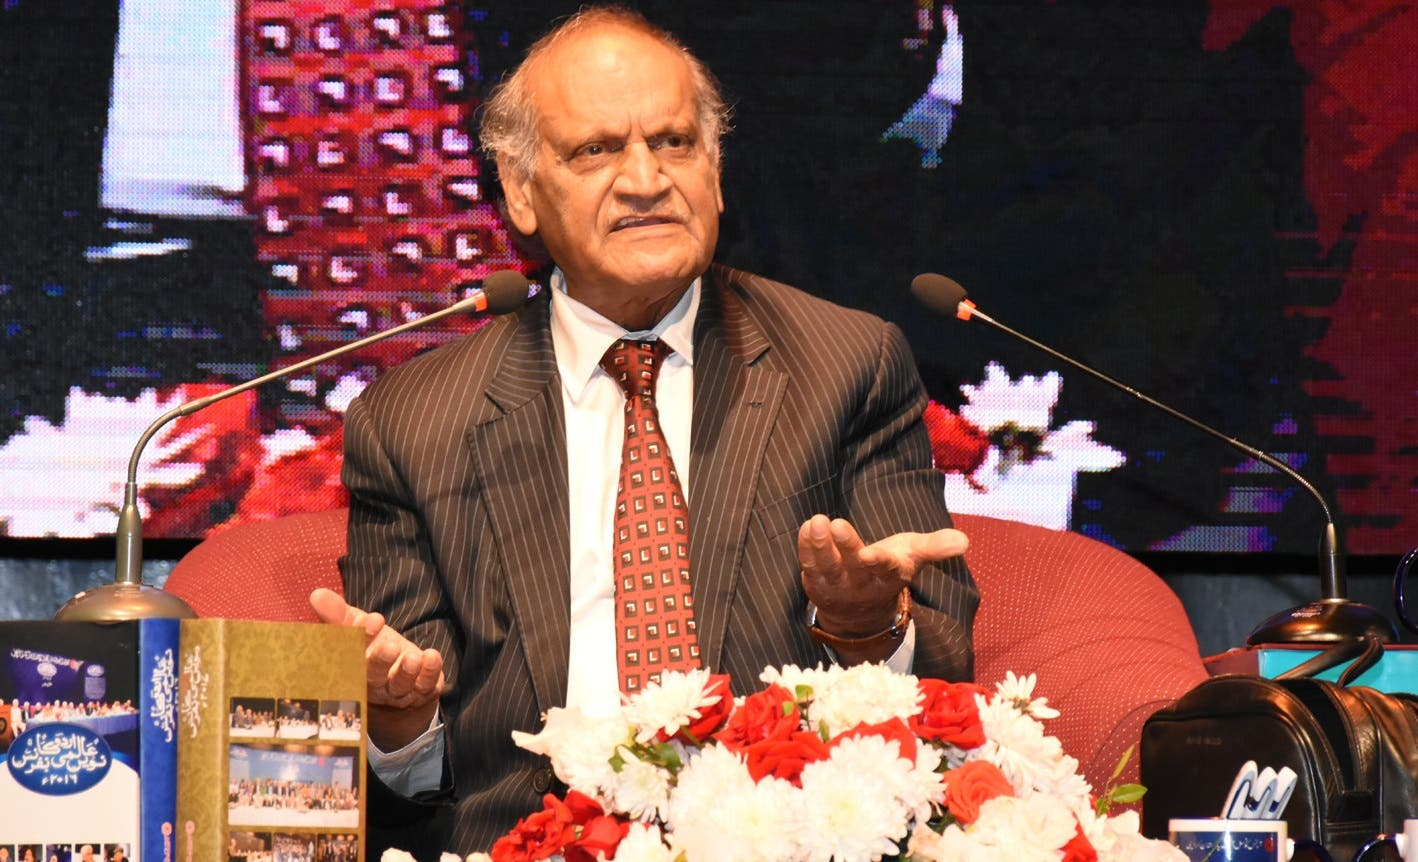 Urdu poet and satirist Anwar Masood regaled the crowd during the festival. (Supplied)